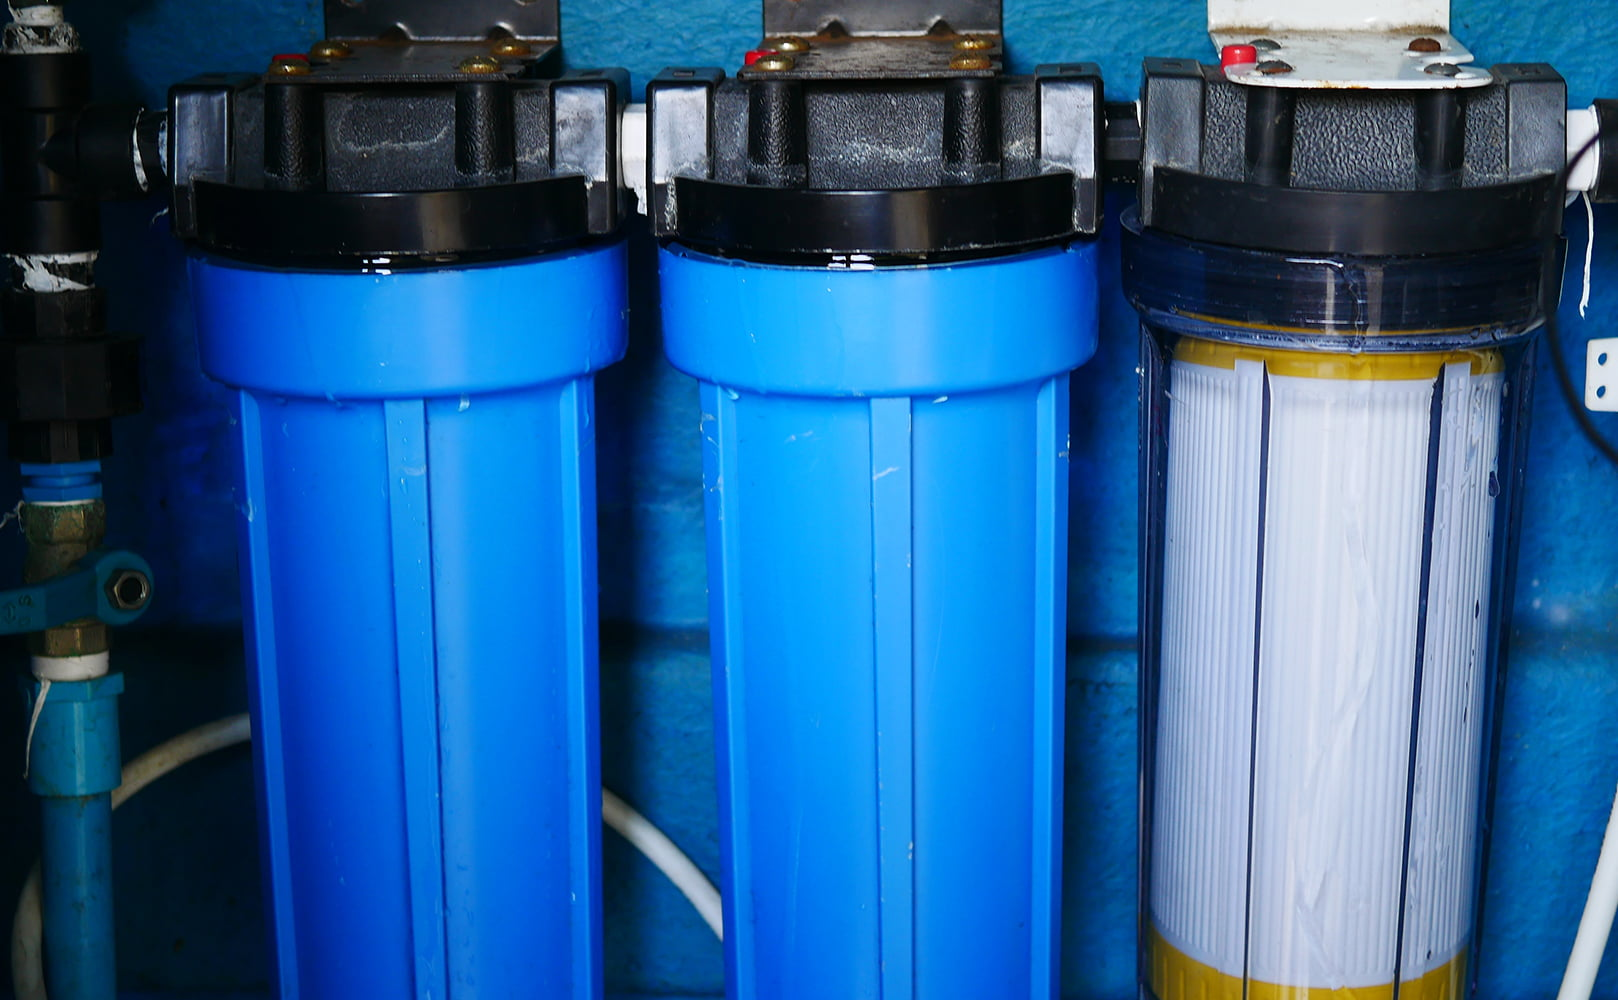 5 Things to Consider Before Installing a Whole-House Water Filter